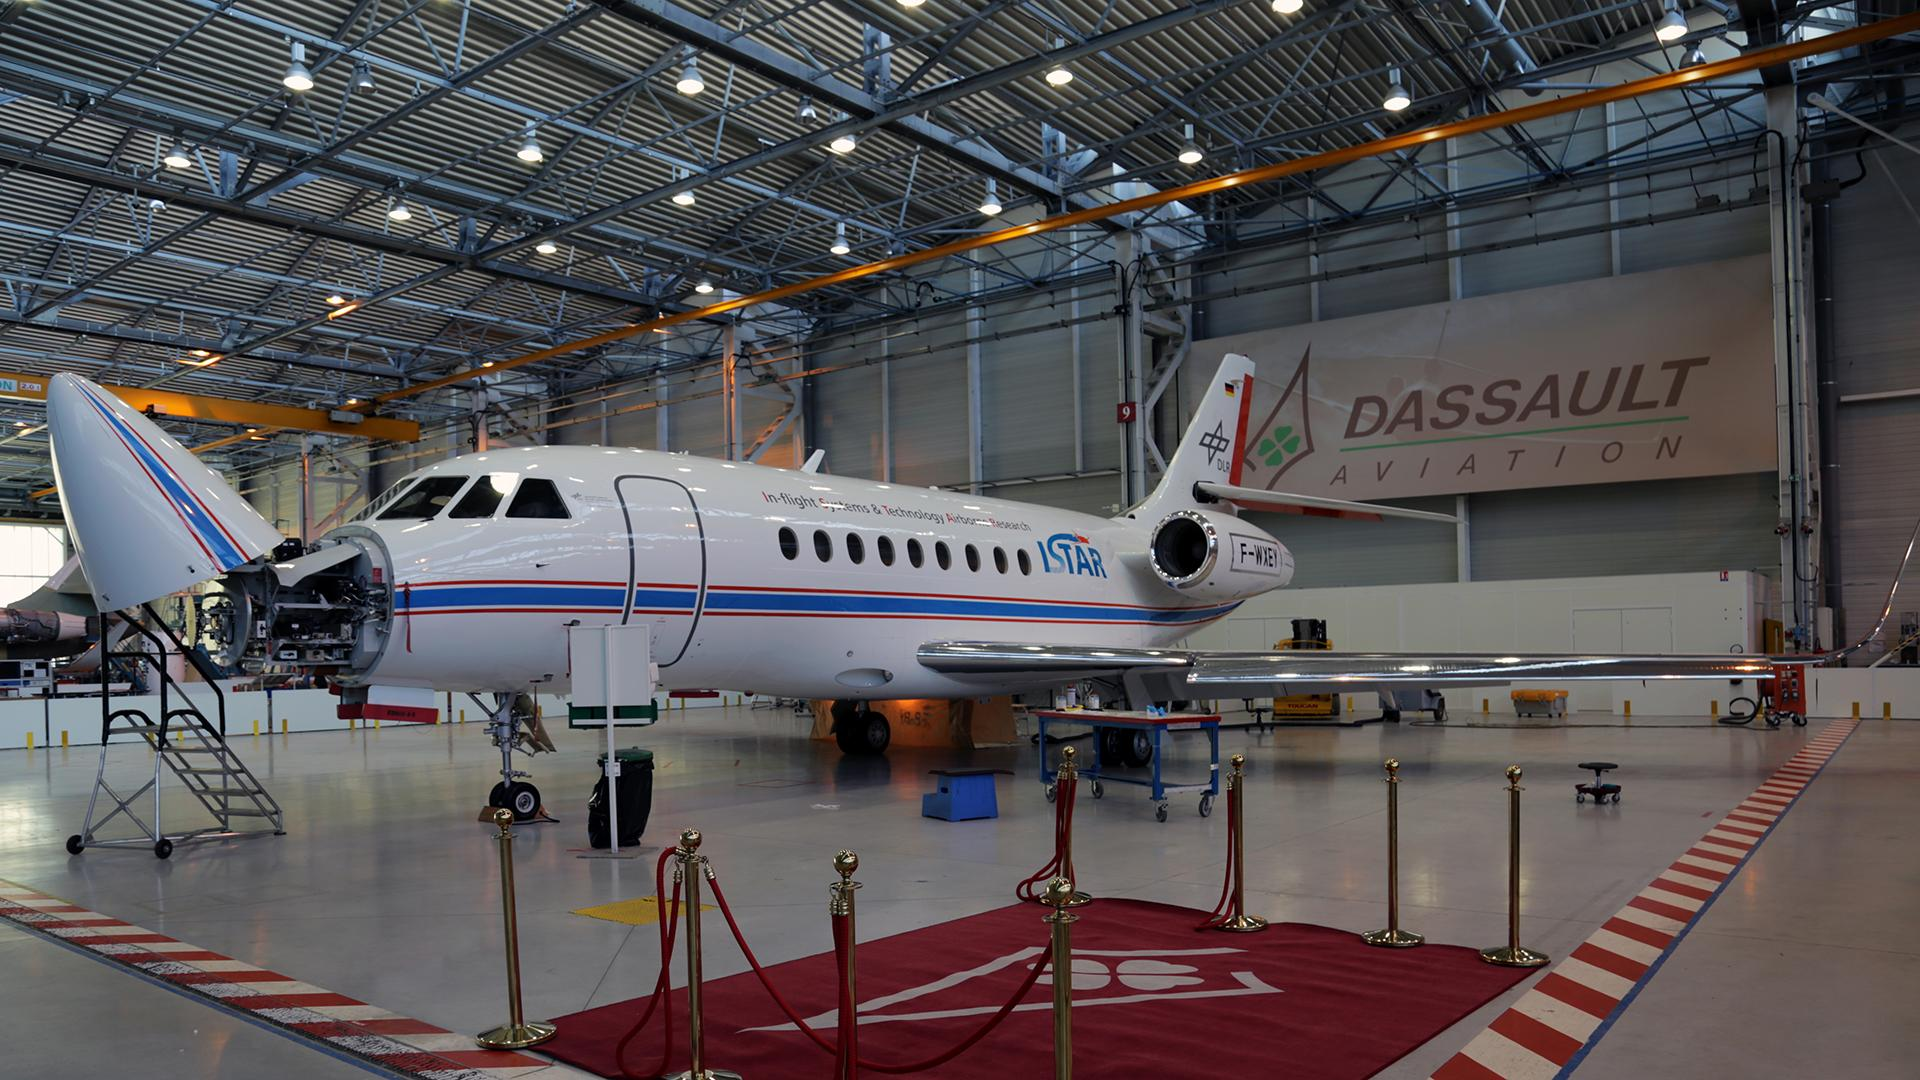 DLR ISTAR research aircraft